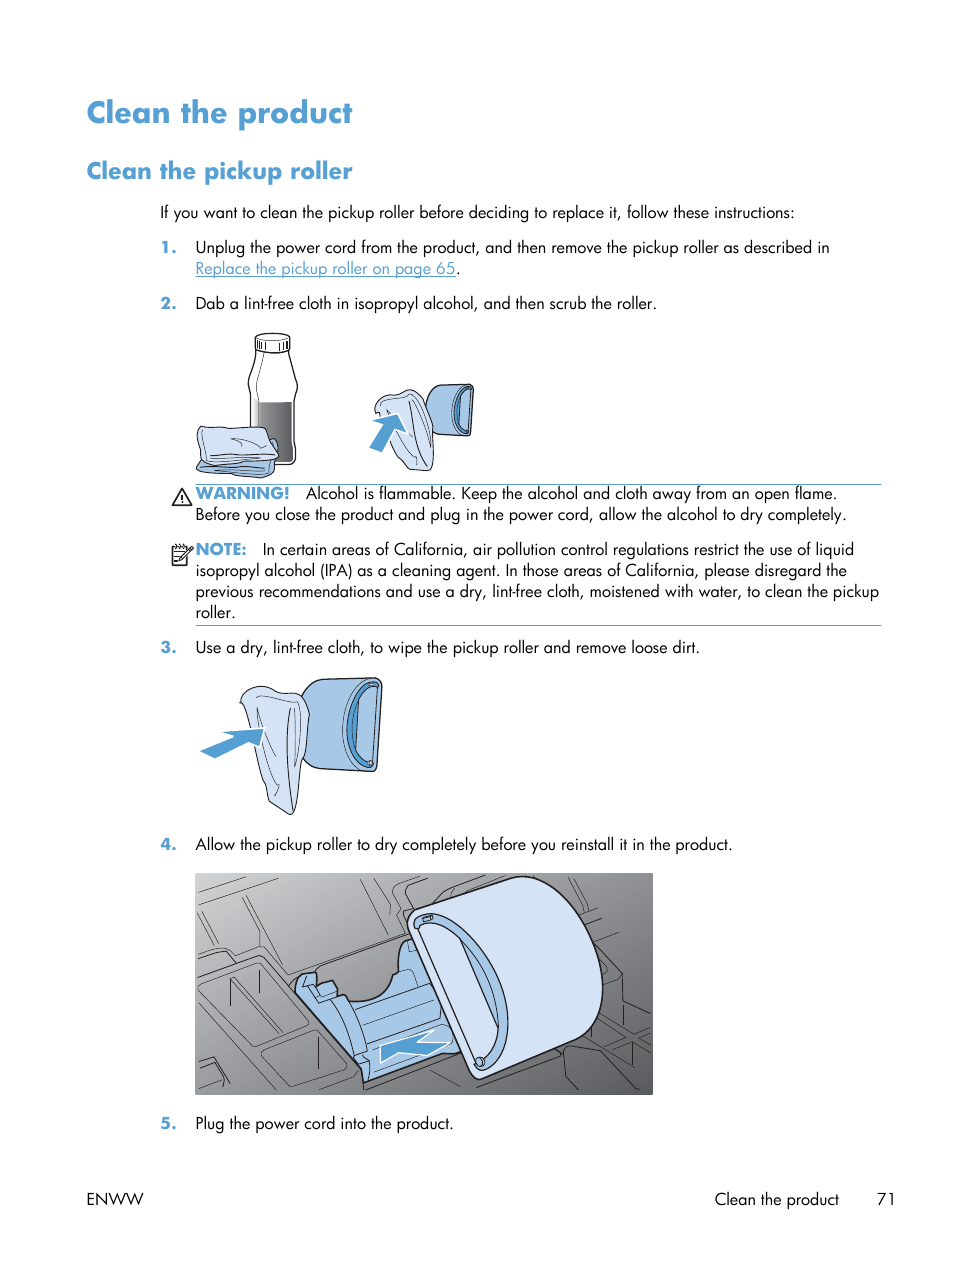 Clean the product, Clean the pickup roller | HP Laserjet